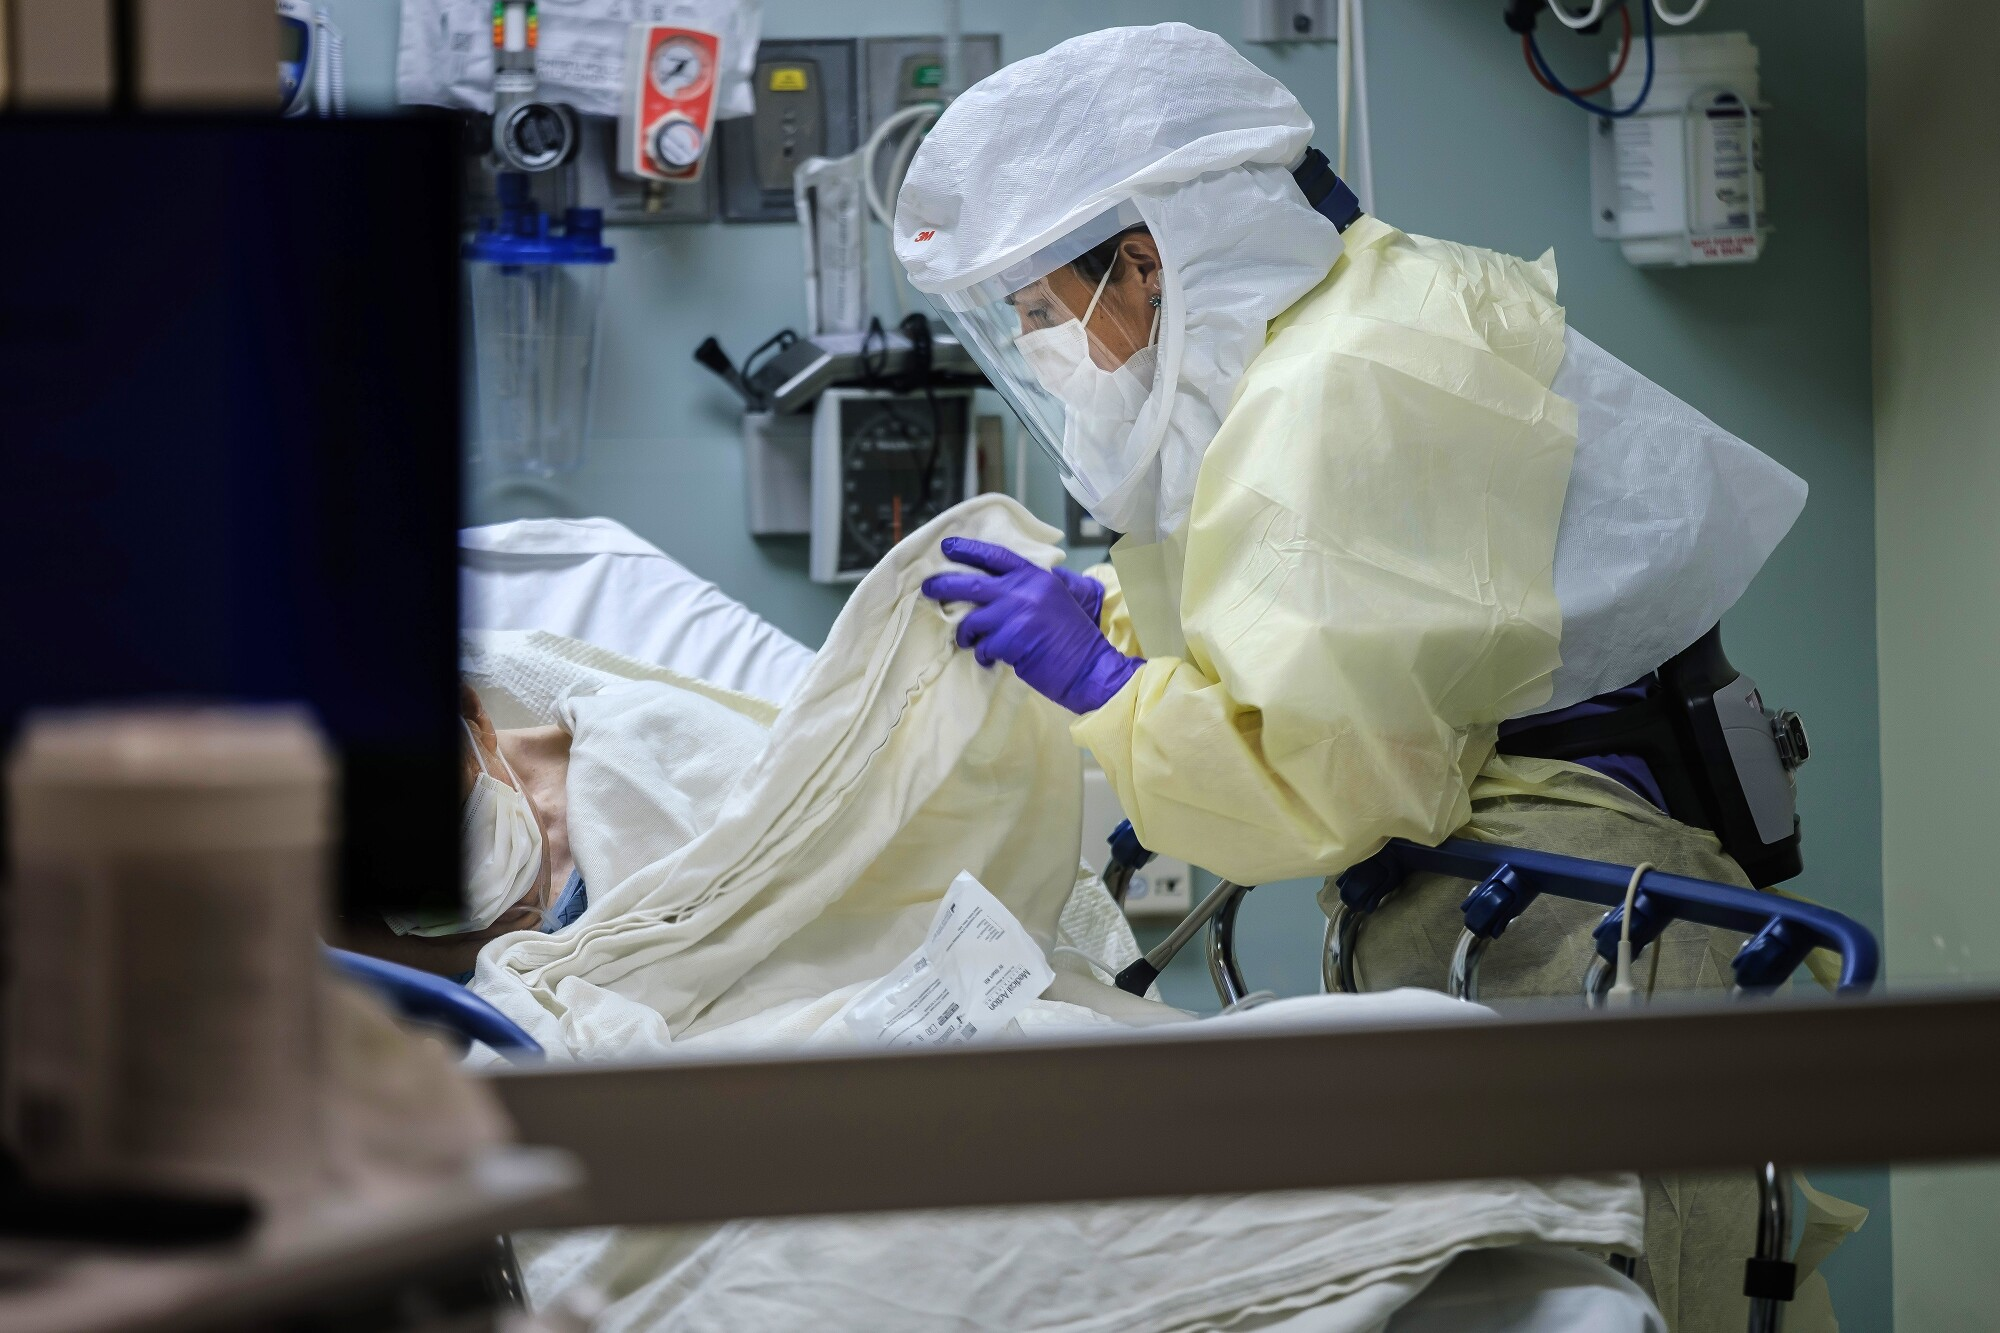 Wearing personal protective equipment, RN April Bandi, cares for a patient under investigation that have possible COVID-19 symptoms, inside a special negative pressure isolation room at the Emergency Department, at Sharp Memorial Hospital in San Diego, Calif., on April 10, 2020.